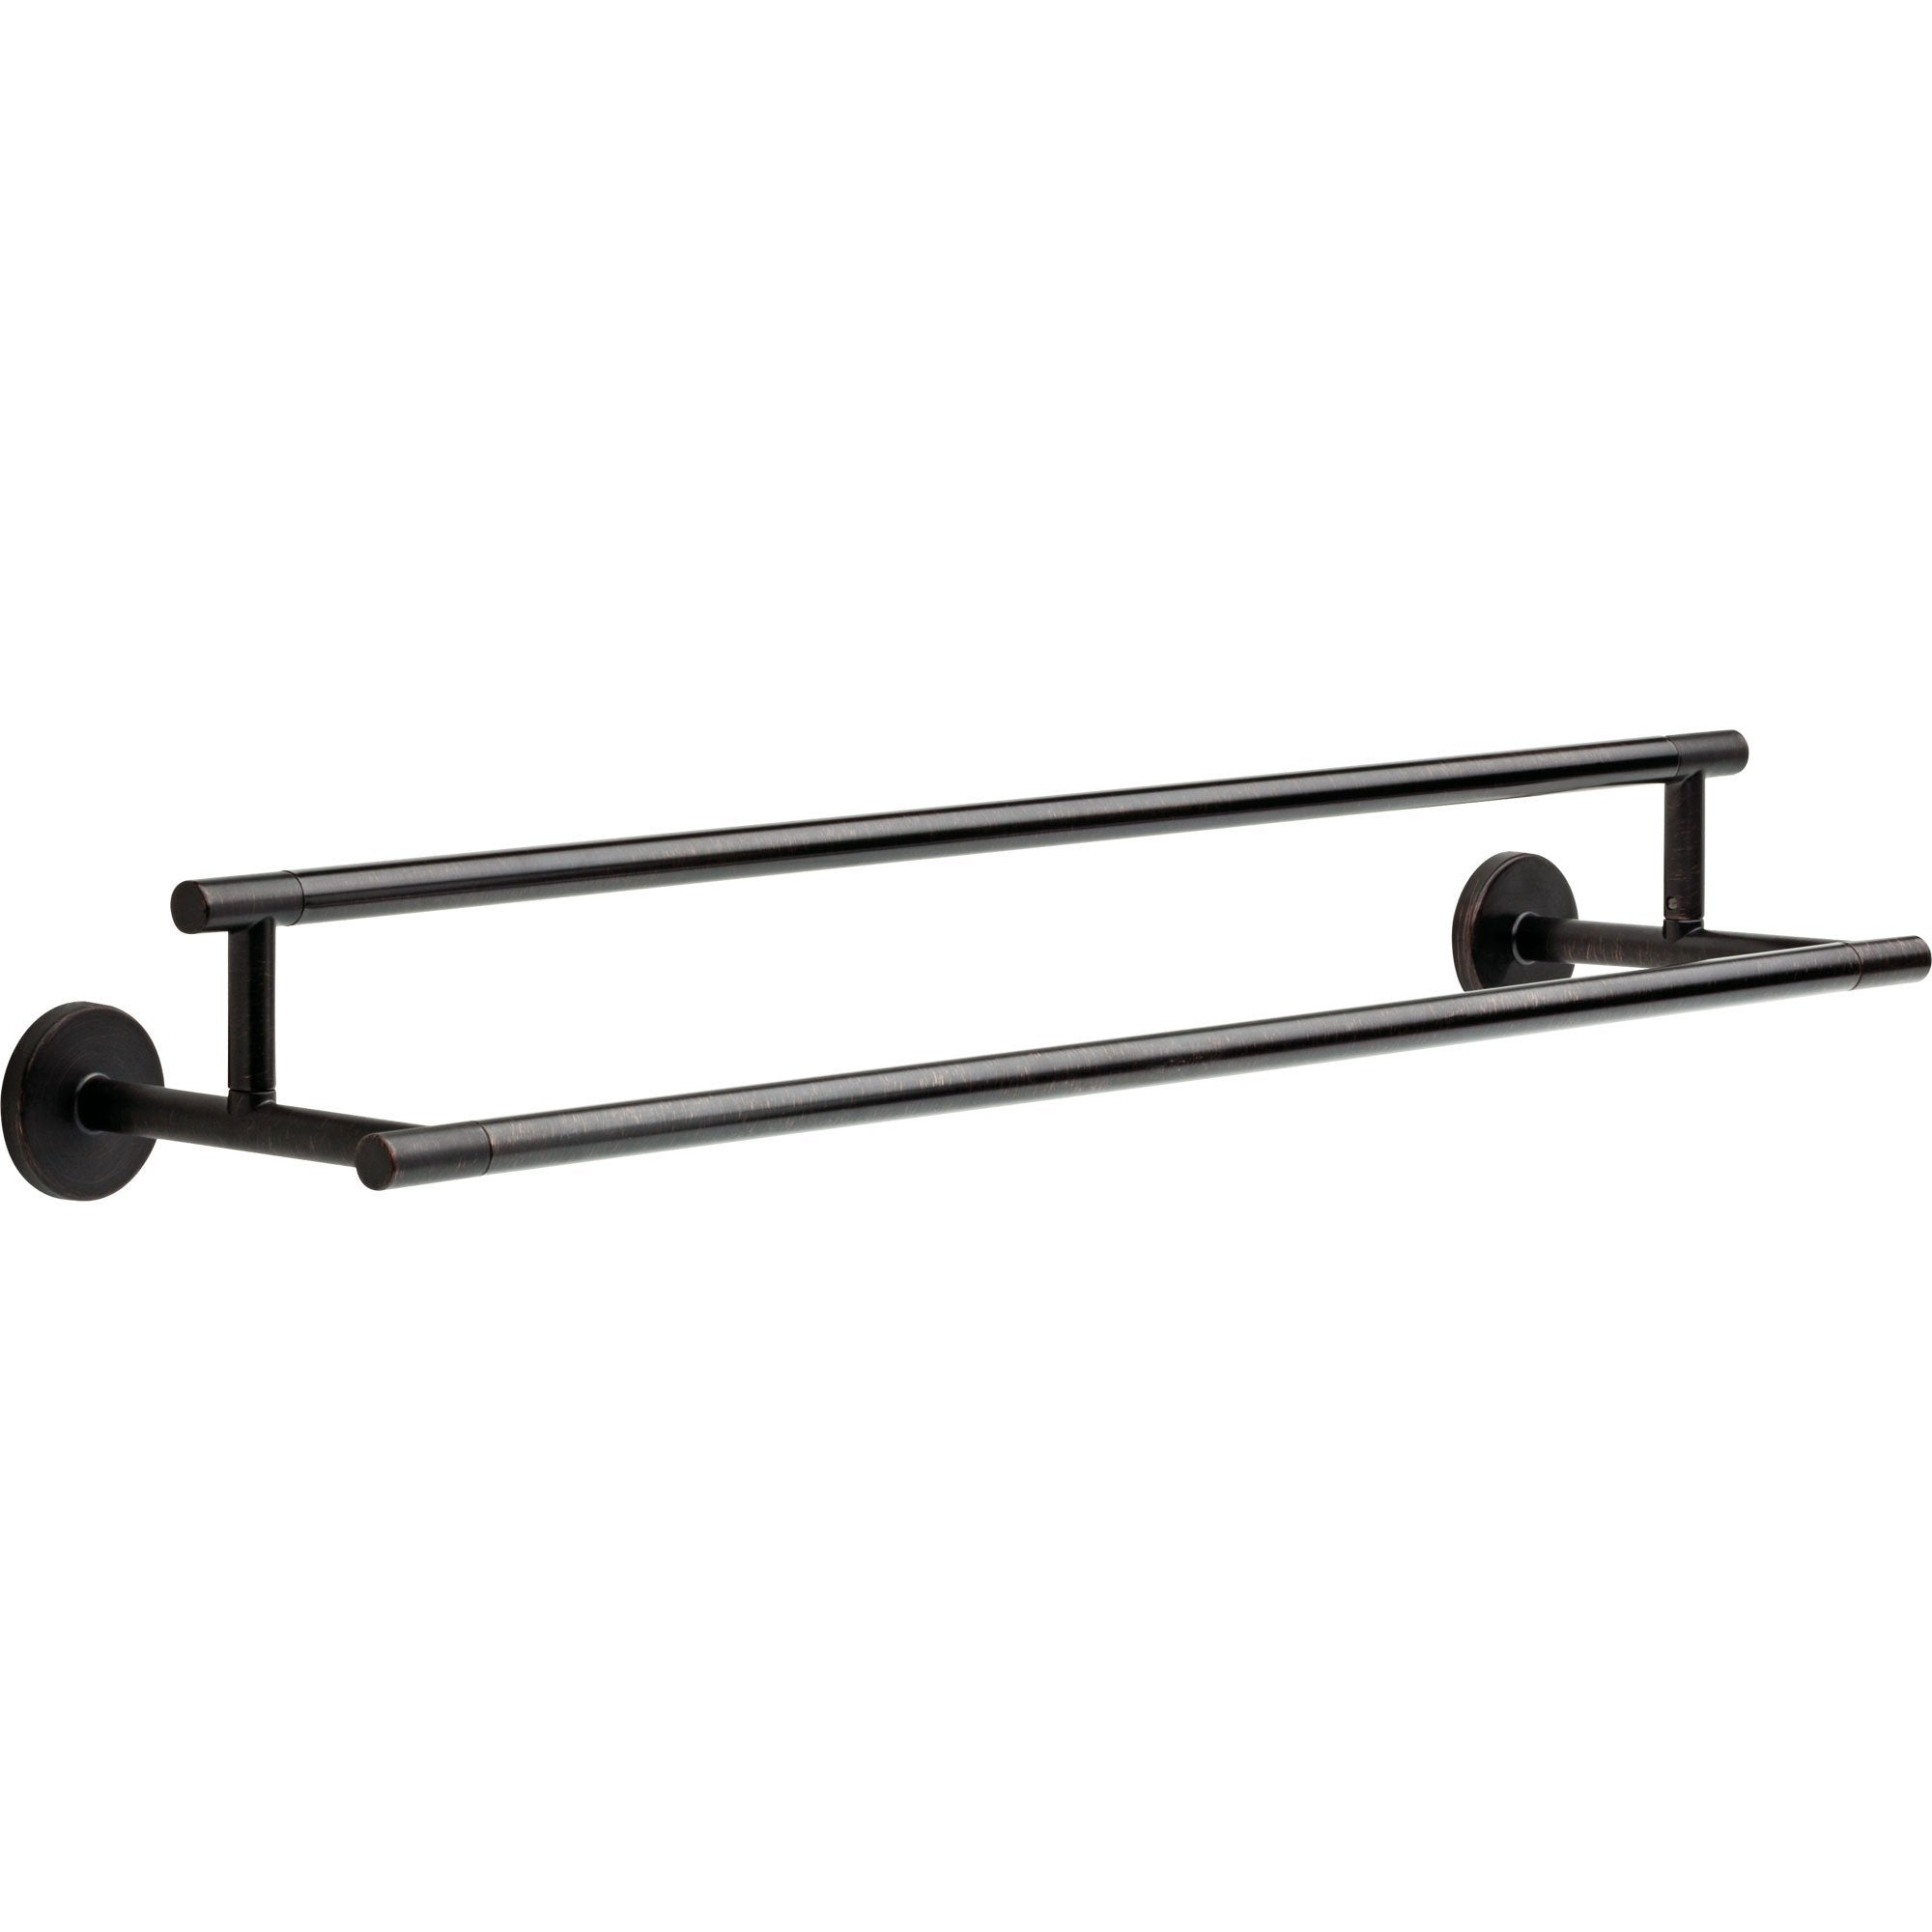 Delta Trinsic Modern 24 inch Venetian Bronze Double Towel Bar 638755